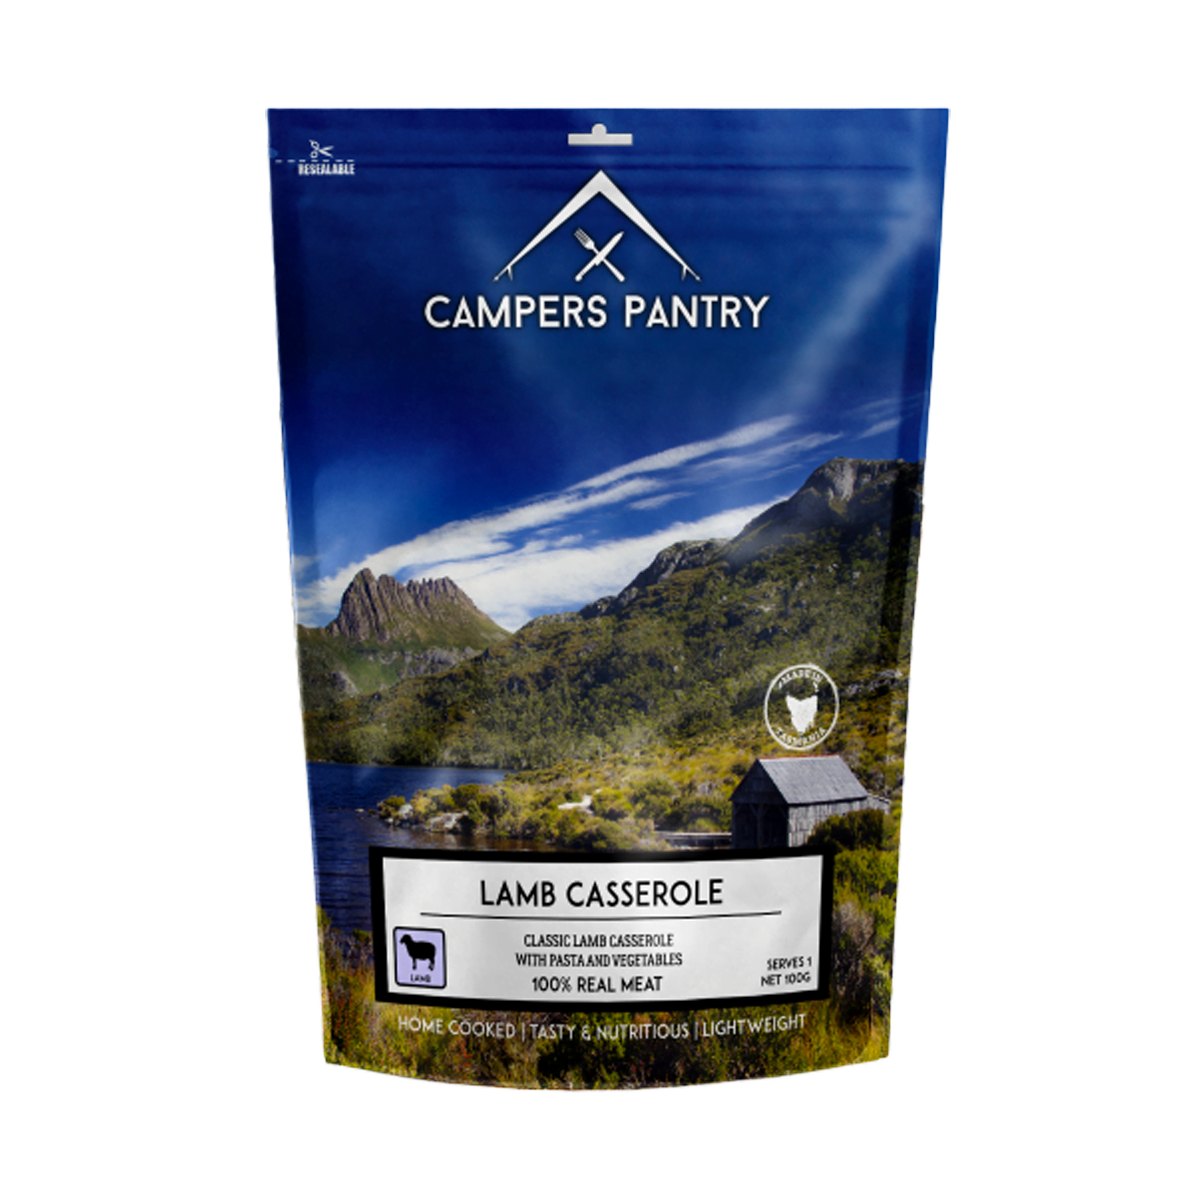 Campers Pantry Lamb Casserole 1